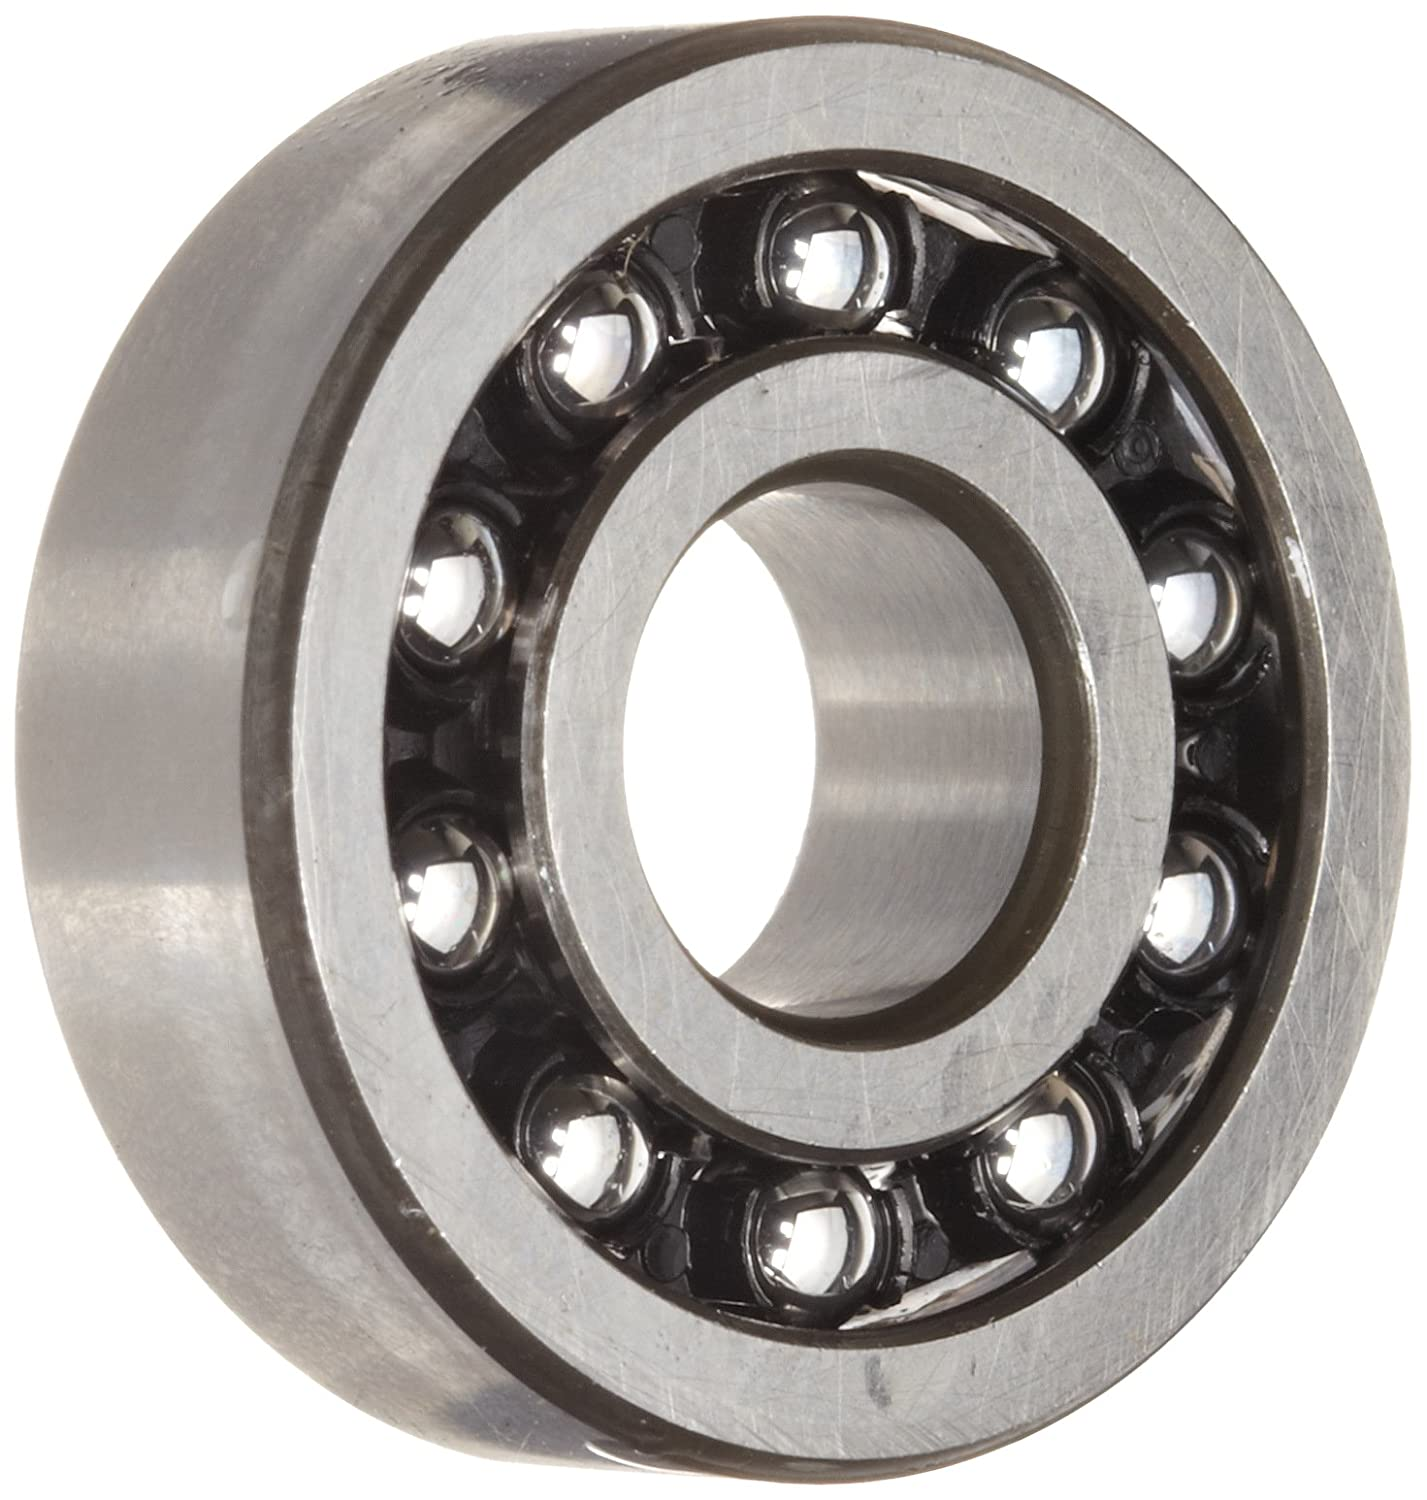 52mm OD NULL Maximum Rotaional Speed Schaeffler Technologies Co. Double Row 25mm Width Metric Open Polyamide//Nylon Cage 25mm ID FAG 11505TV Self-Aligning Bearing Normal Clearance